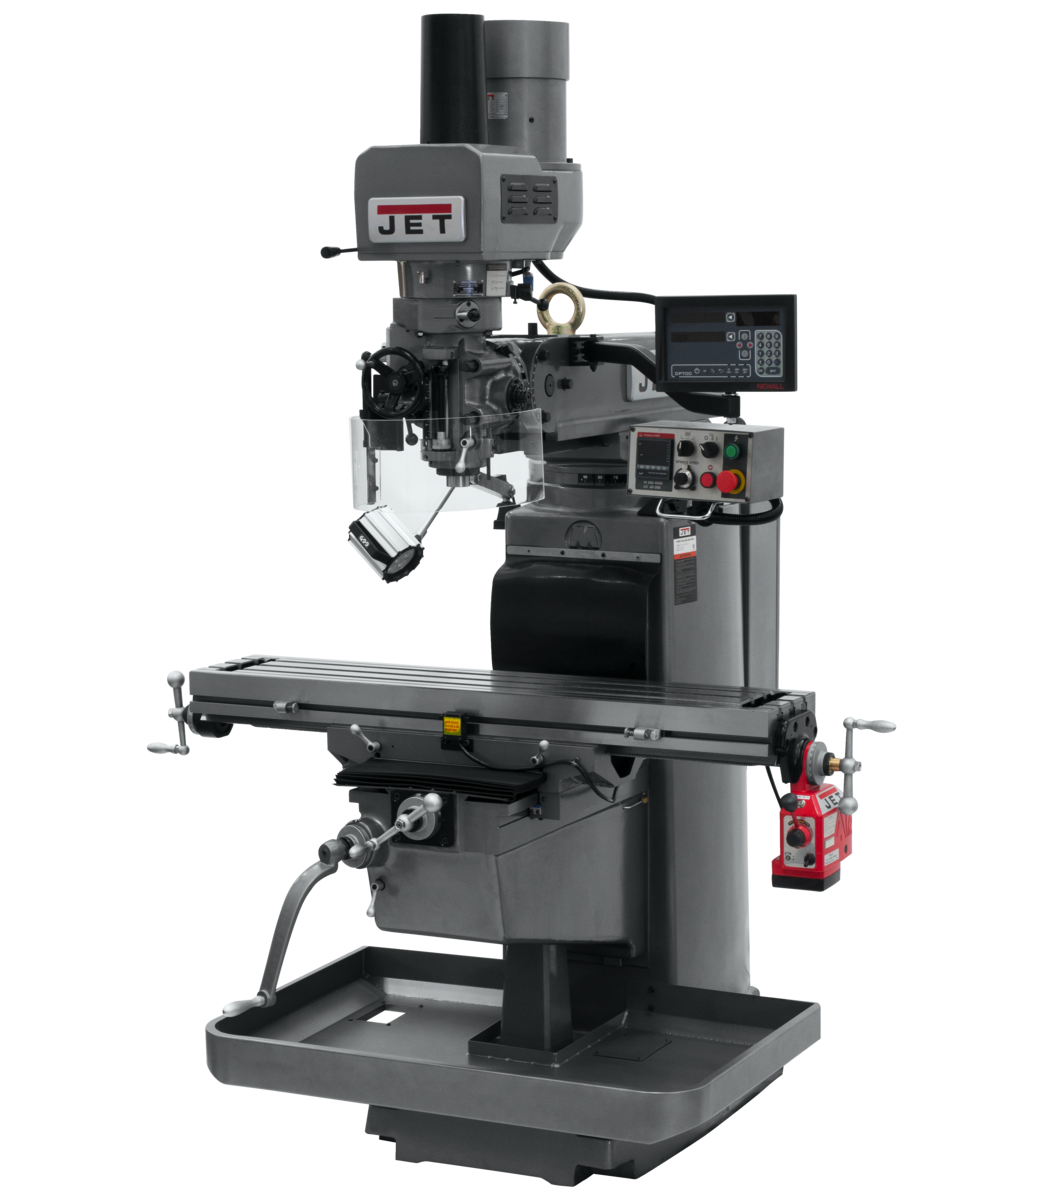 JTM-1050EVS2/230 Mill With Newall DP700 DRO With X-Axis Powerfeed and Air Powered Drawbar